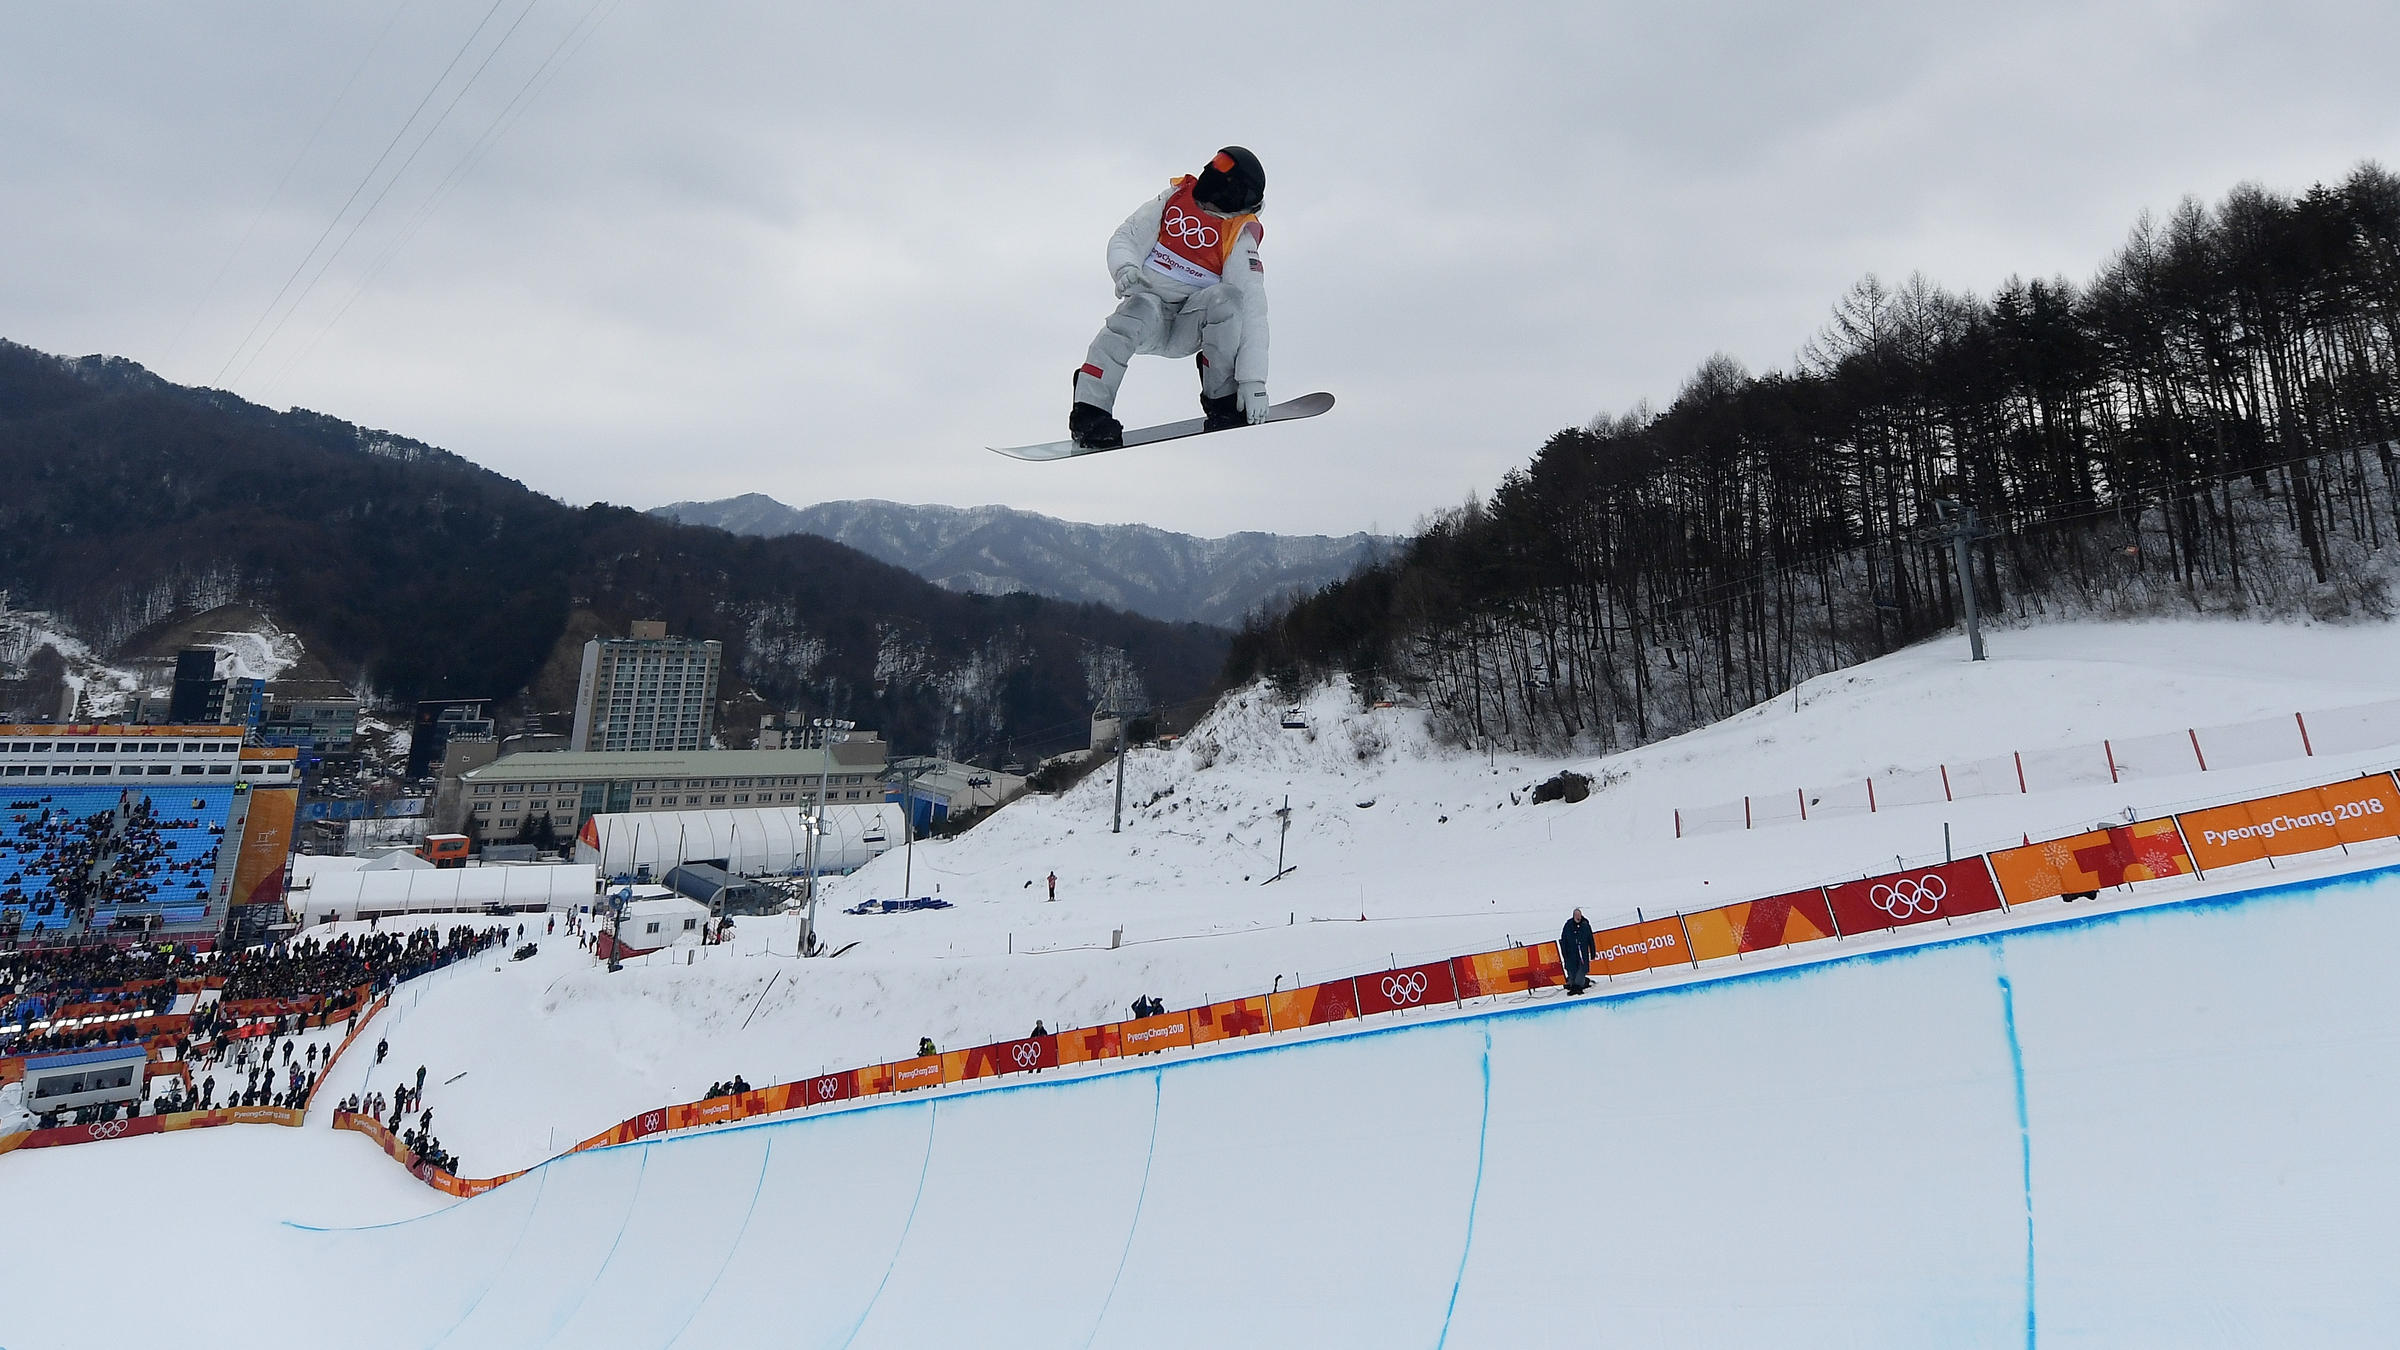 Shaun White: USA's snowboarding superstar makes big statement for third Olympic gold